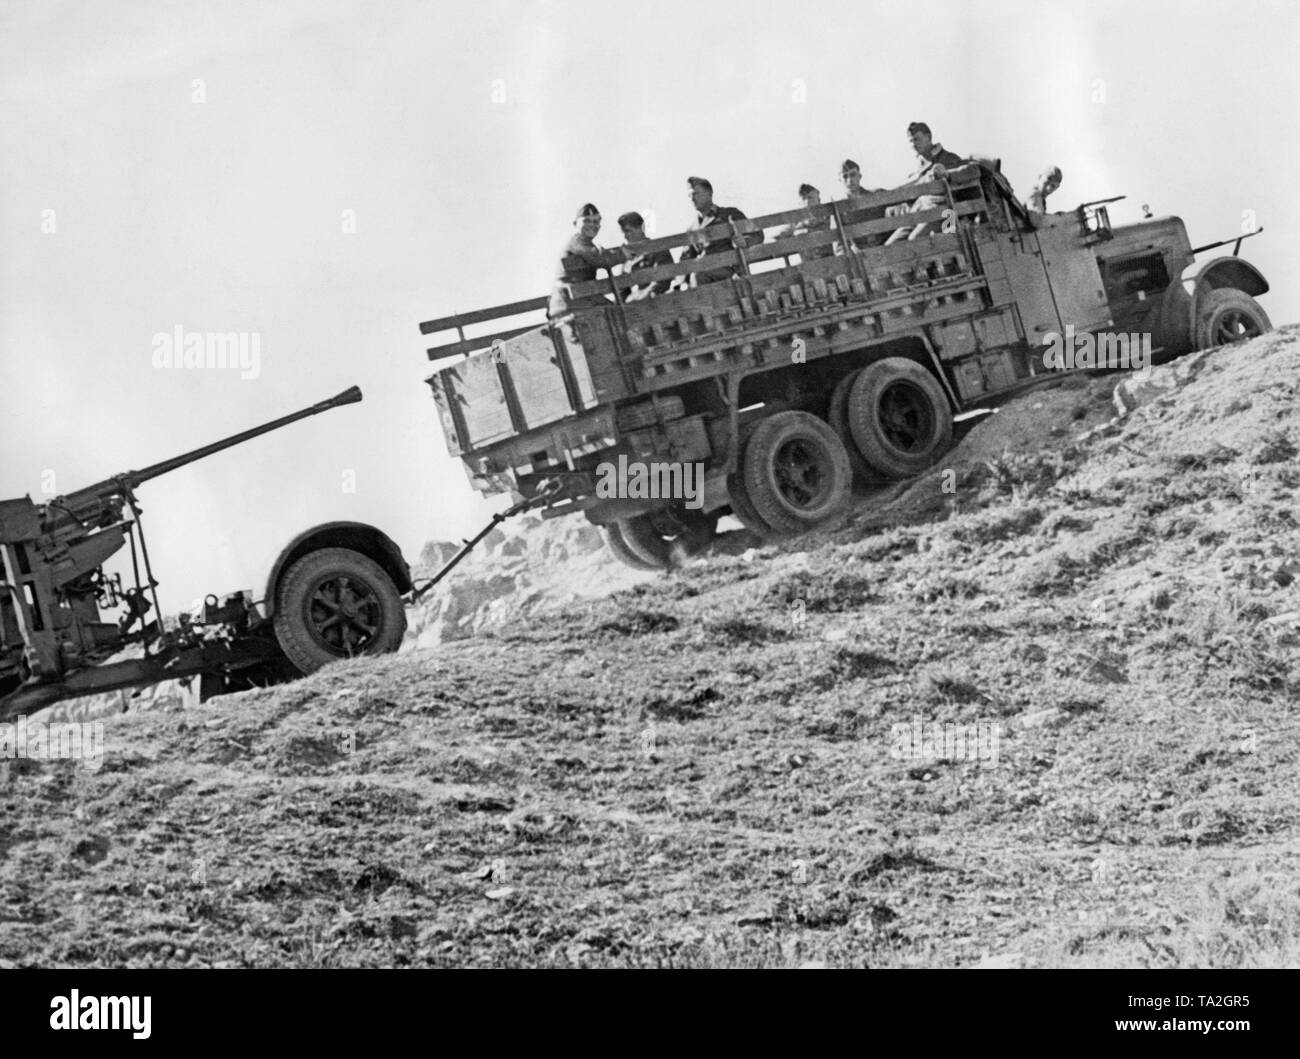 Undated photo of an anti-aircraft unit of the Condor Legion during the Spanish Civil War. The 3.7cm antiaircraft gun 18 is thereby pulled up by a truck. Legionnaires are sitting on the stillage of the truck. - Stock Image